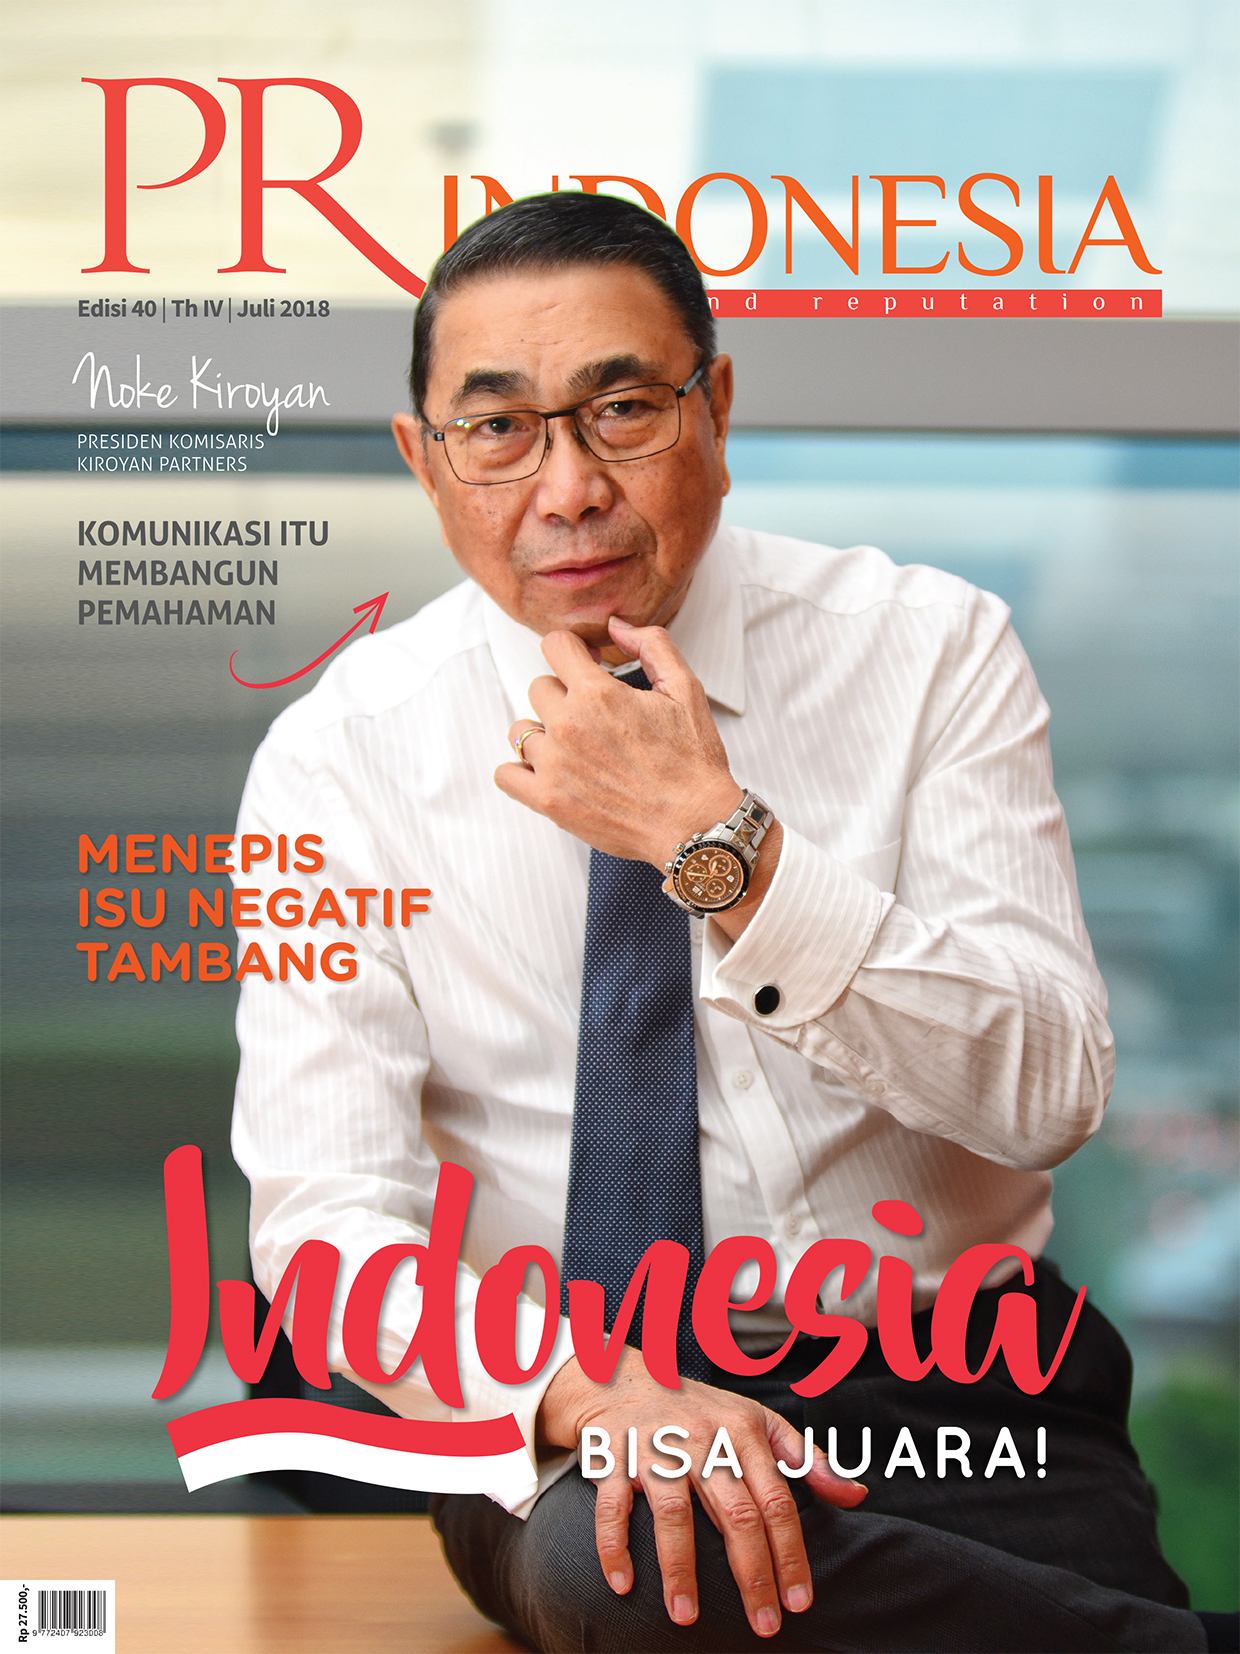 PR INDONESIA-Cover-Edisi 40-Juli 2018